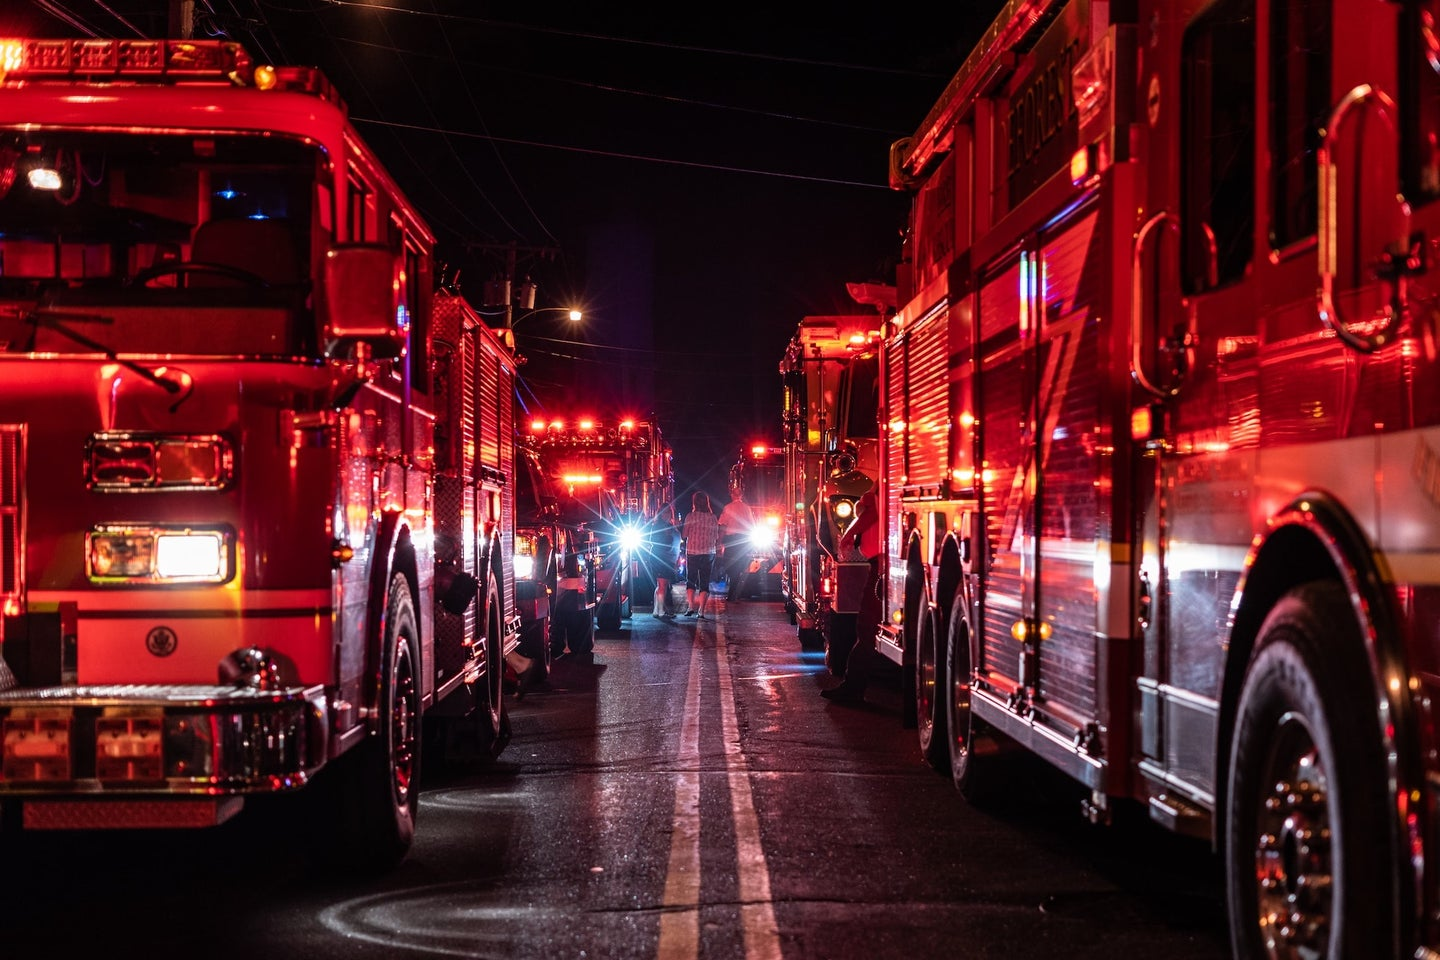 fire trucks lines up on a road